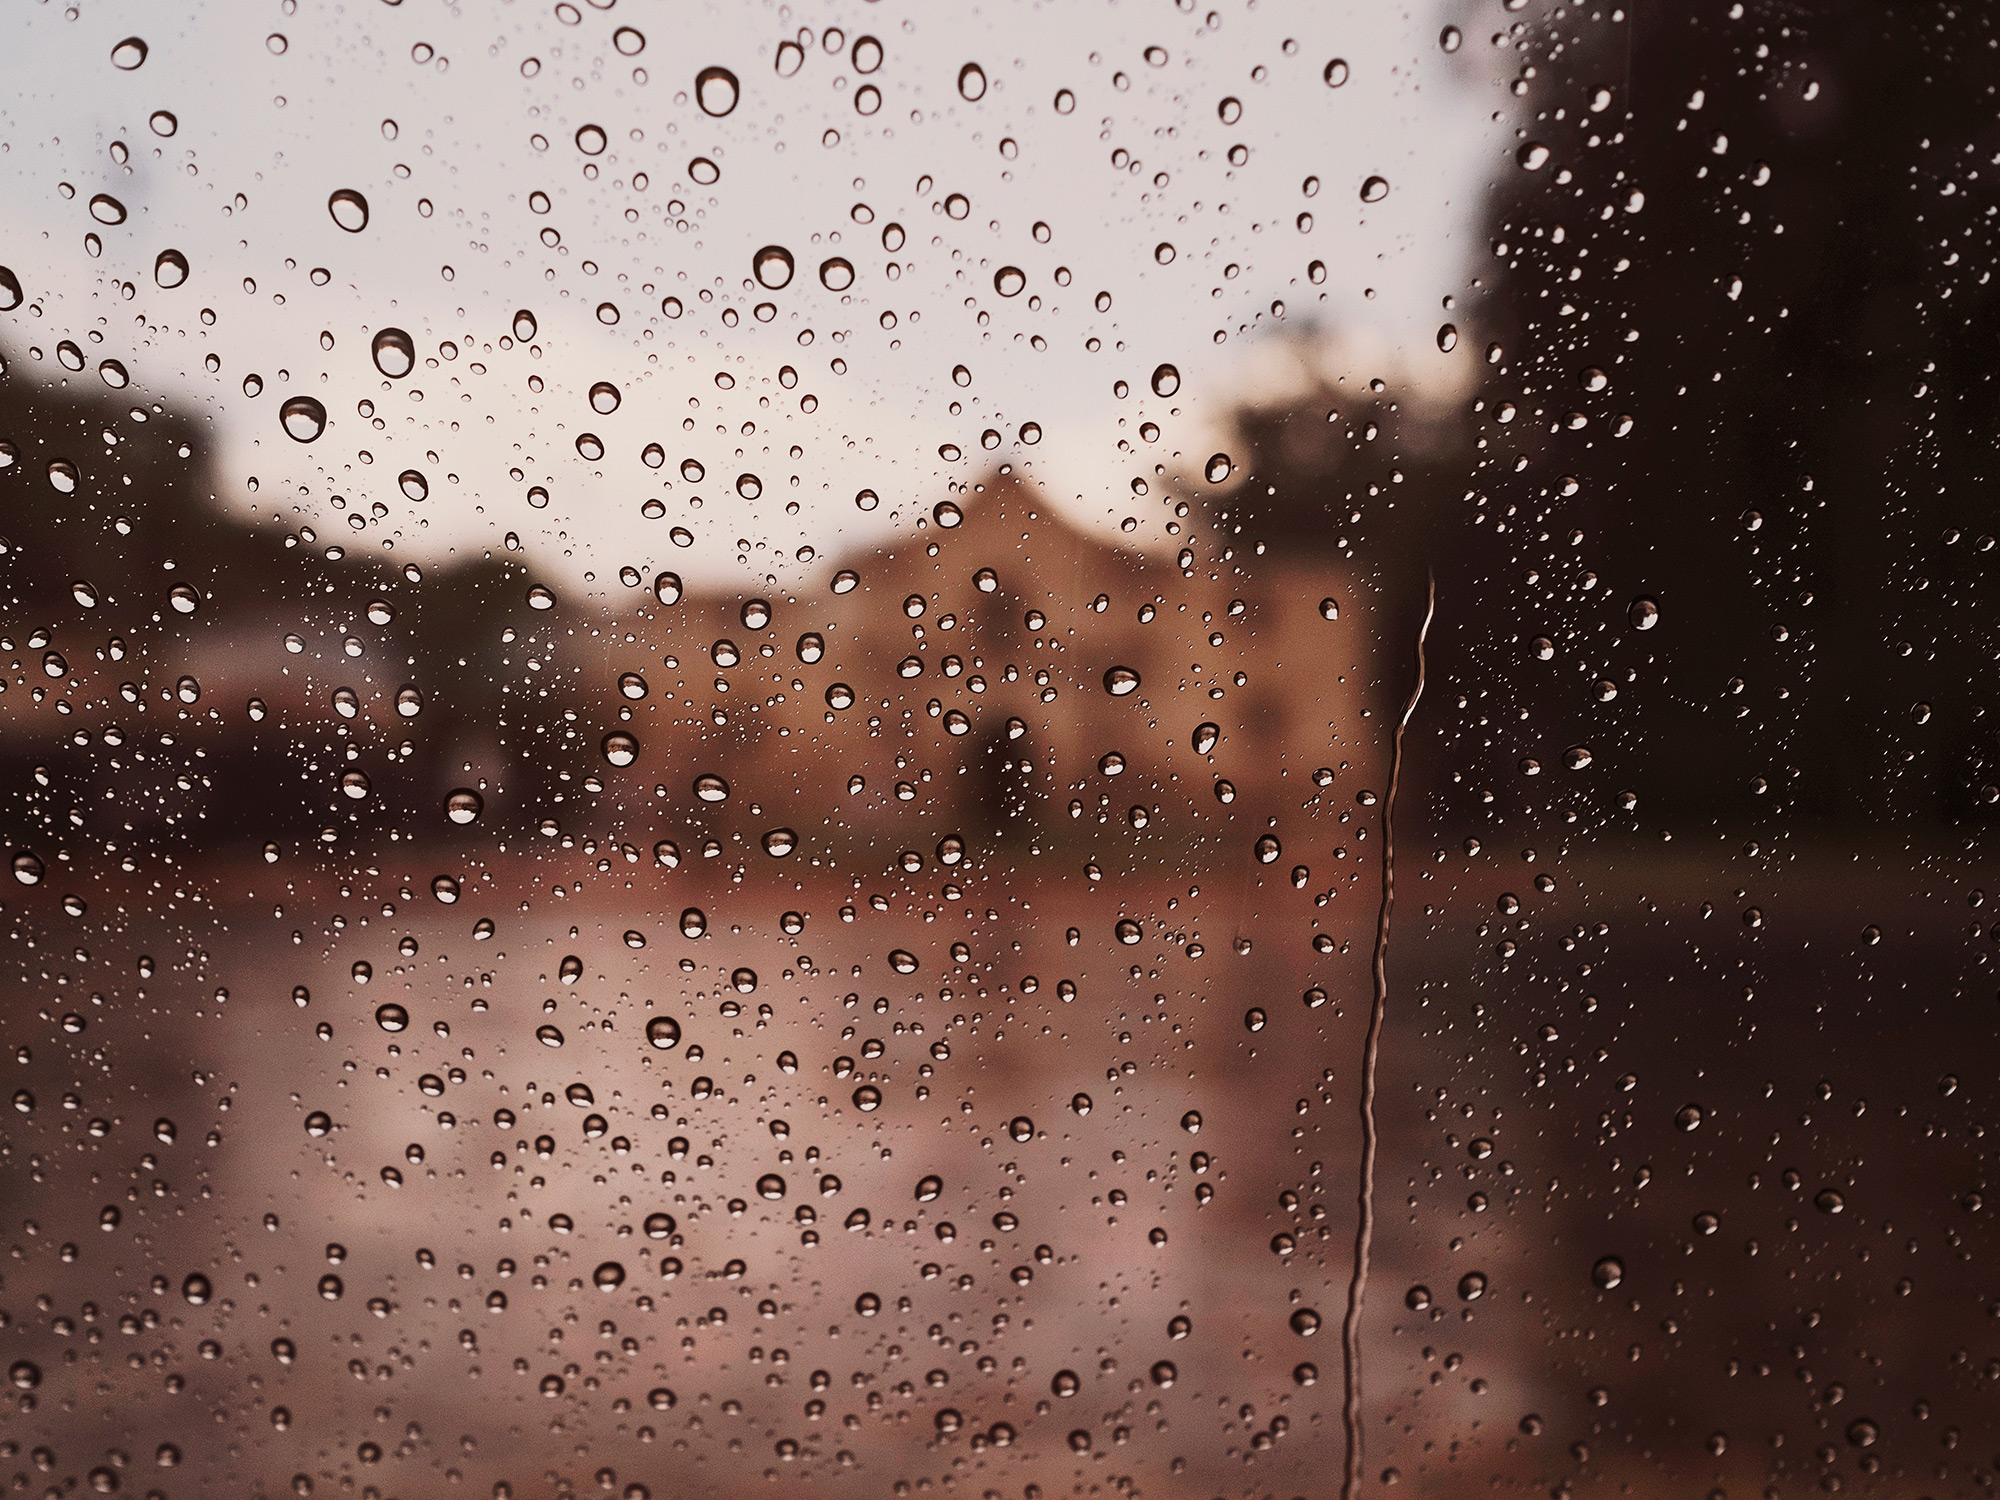 A detail photograph of a window with rain drops showing The Alamo in San Antonio, Texas in the background, by Todd Spoth.